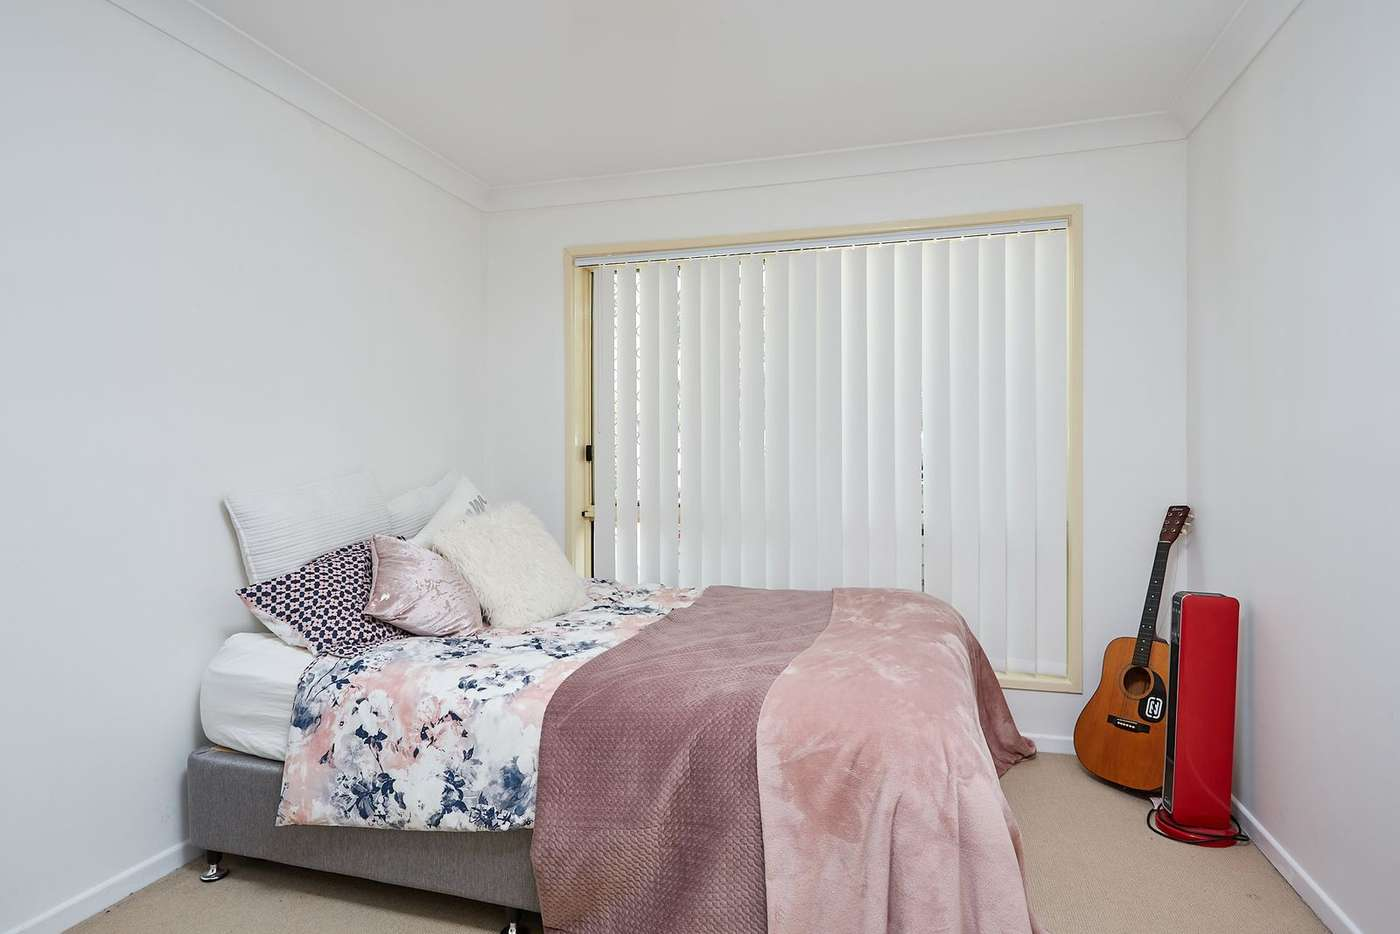 Fifth view of Homely house listing, 32 Inwood Circuit, Merrimac QLD 4226